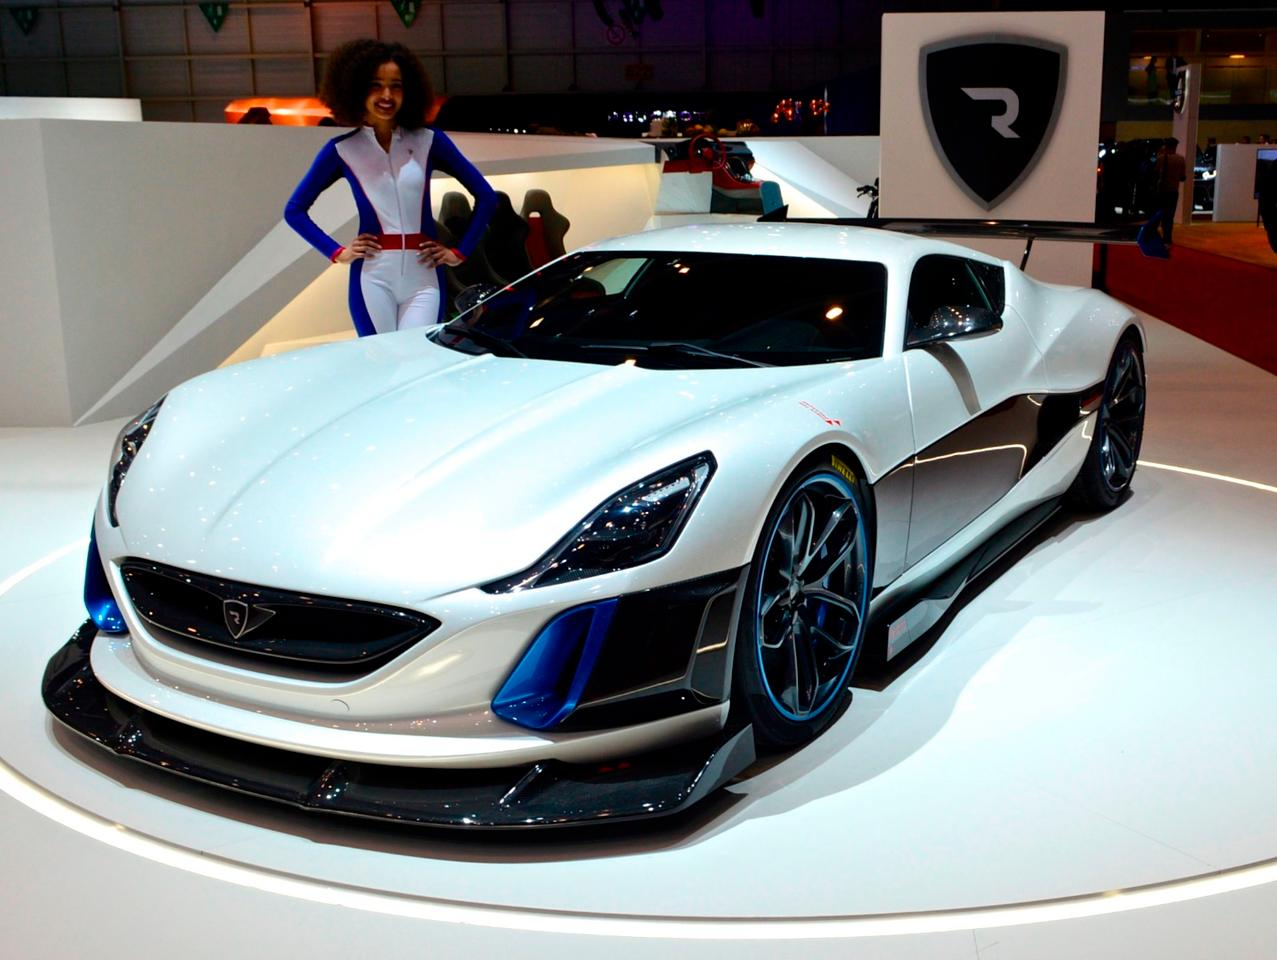 Rimac Concept S at the 2016 Geneva Motor Show